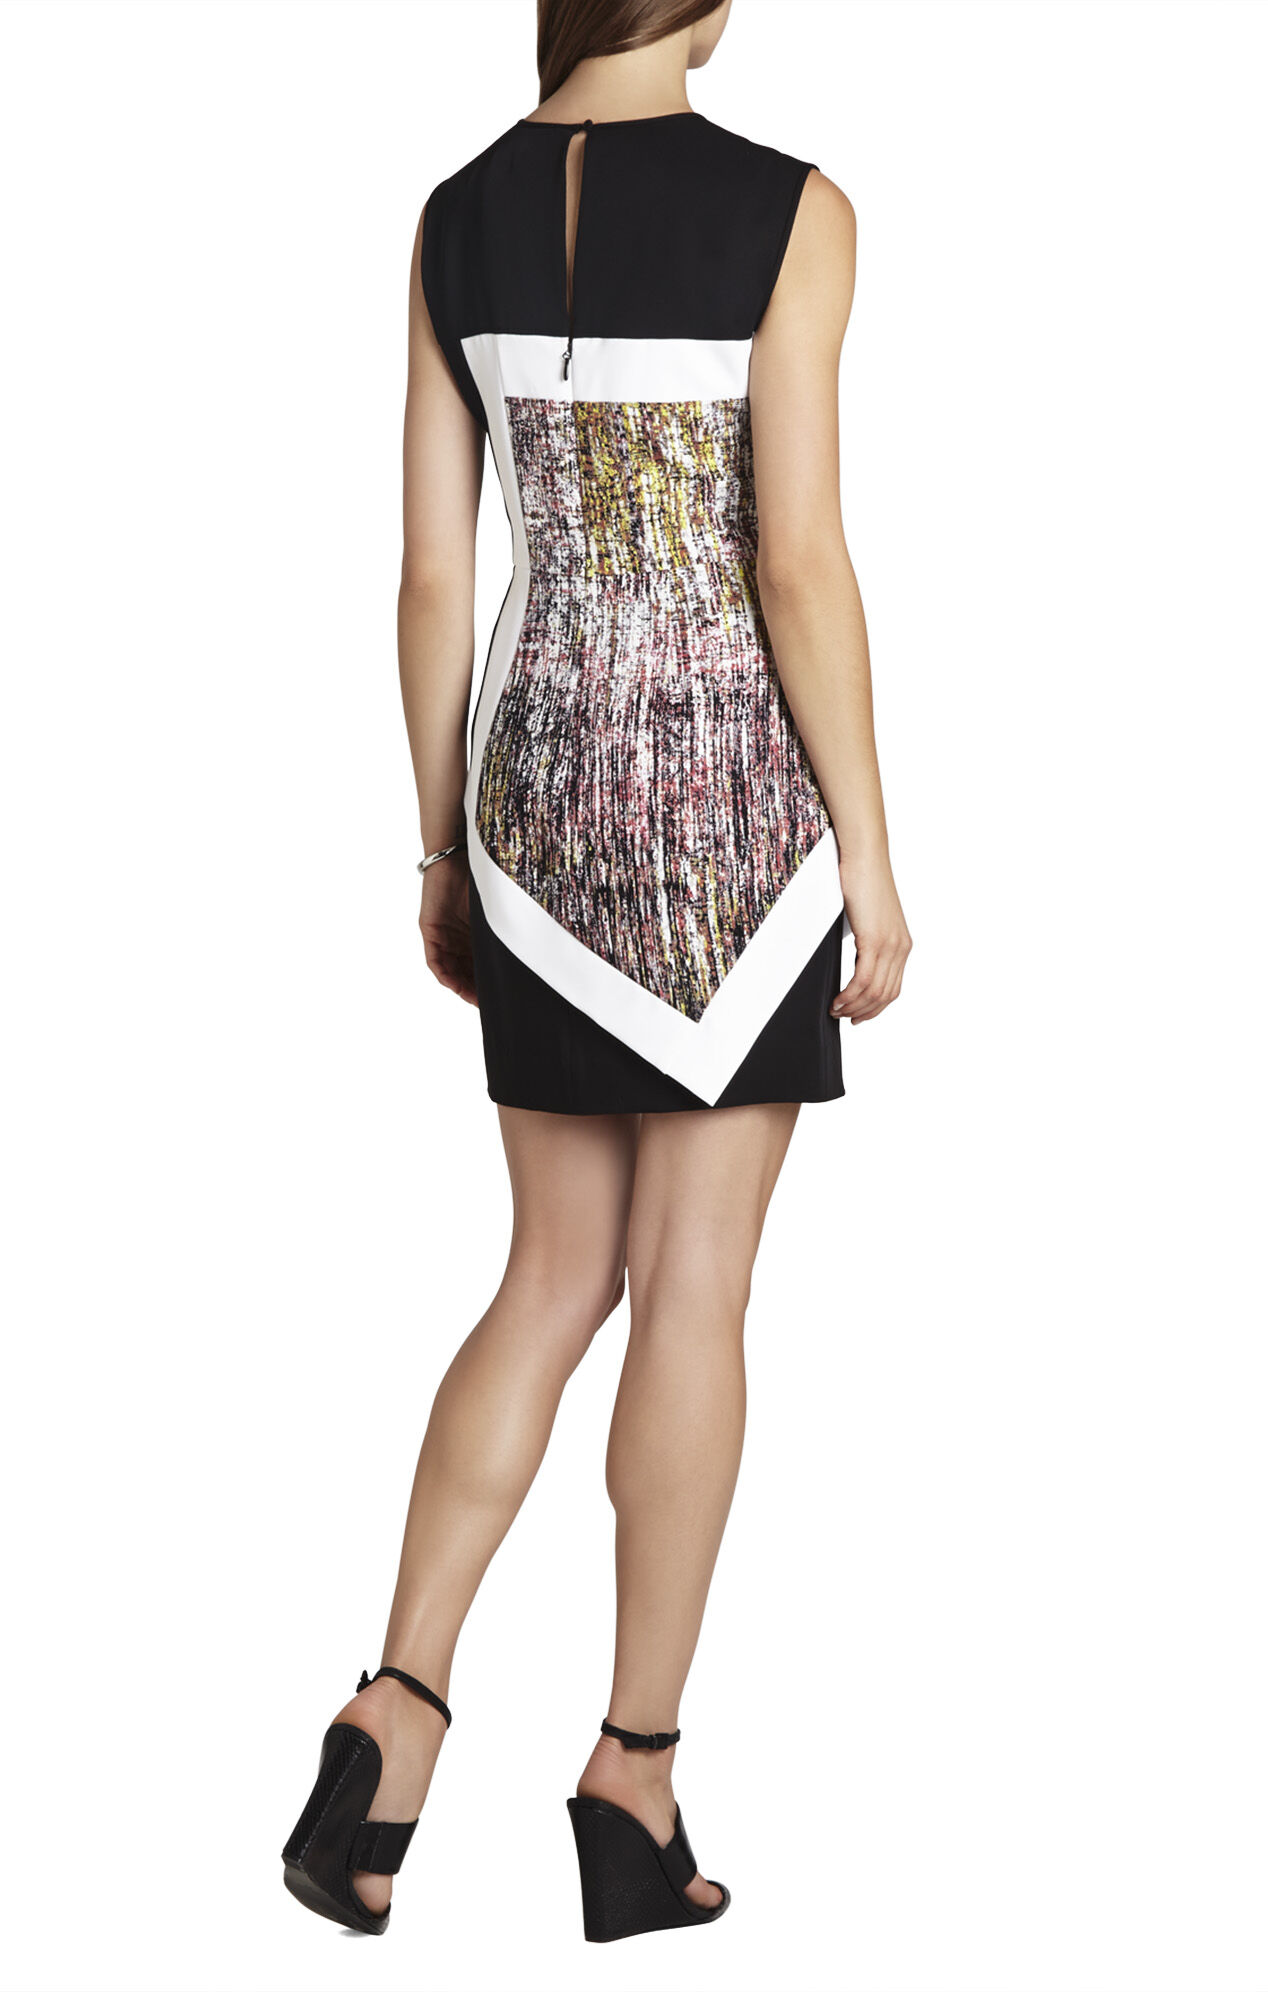 Alessandra Sleeveless Print-Blocked Dress